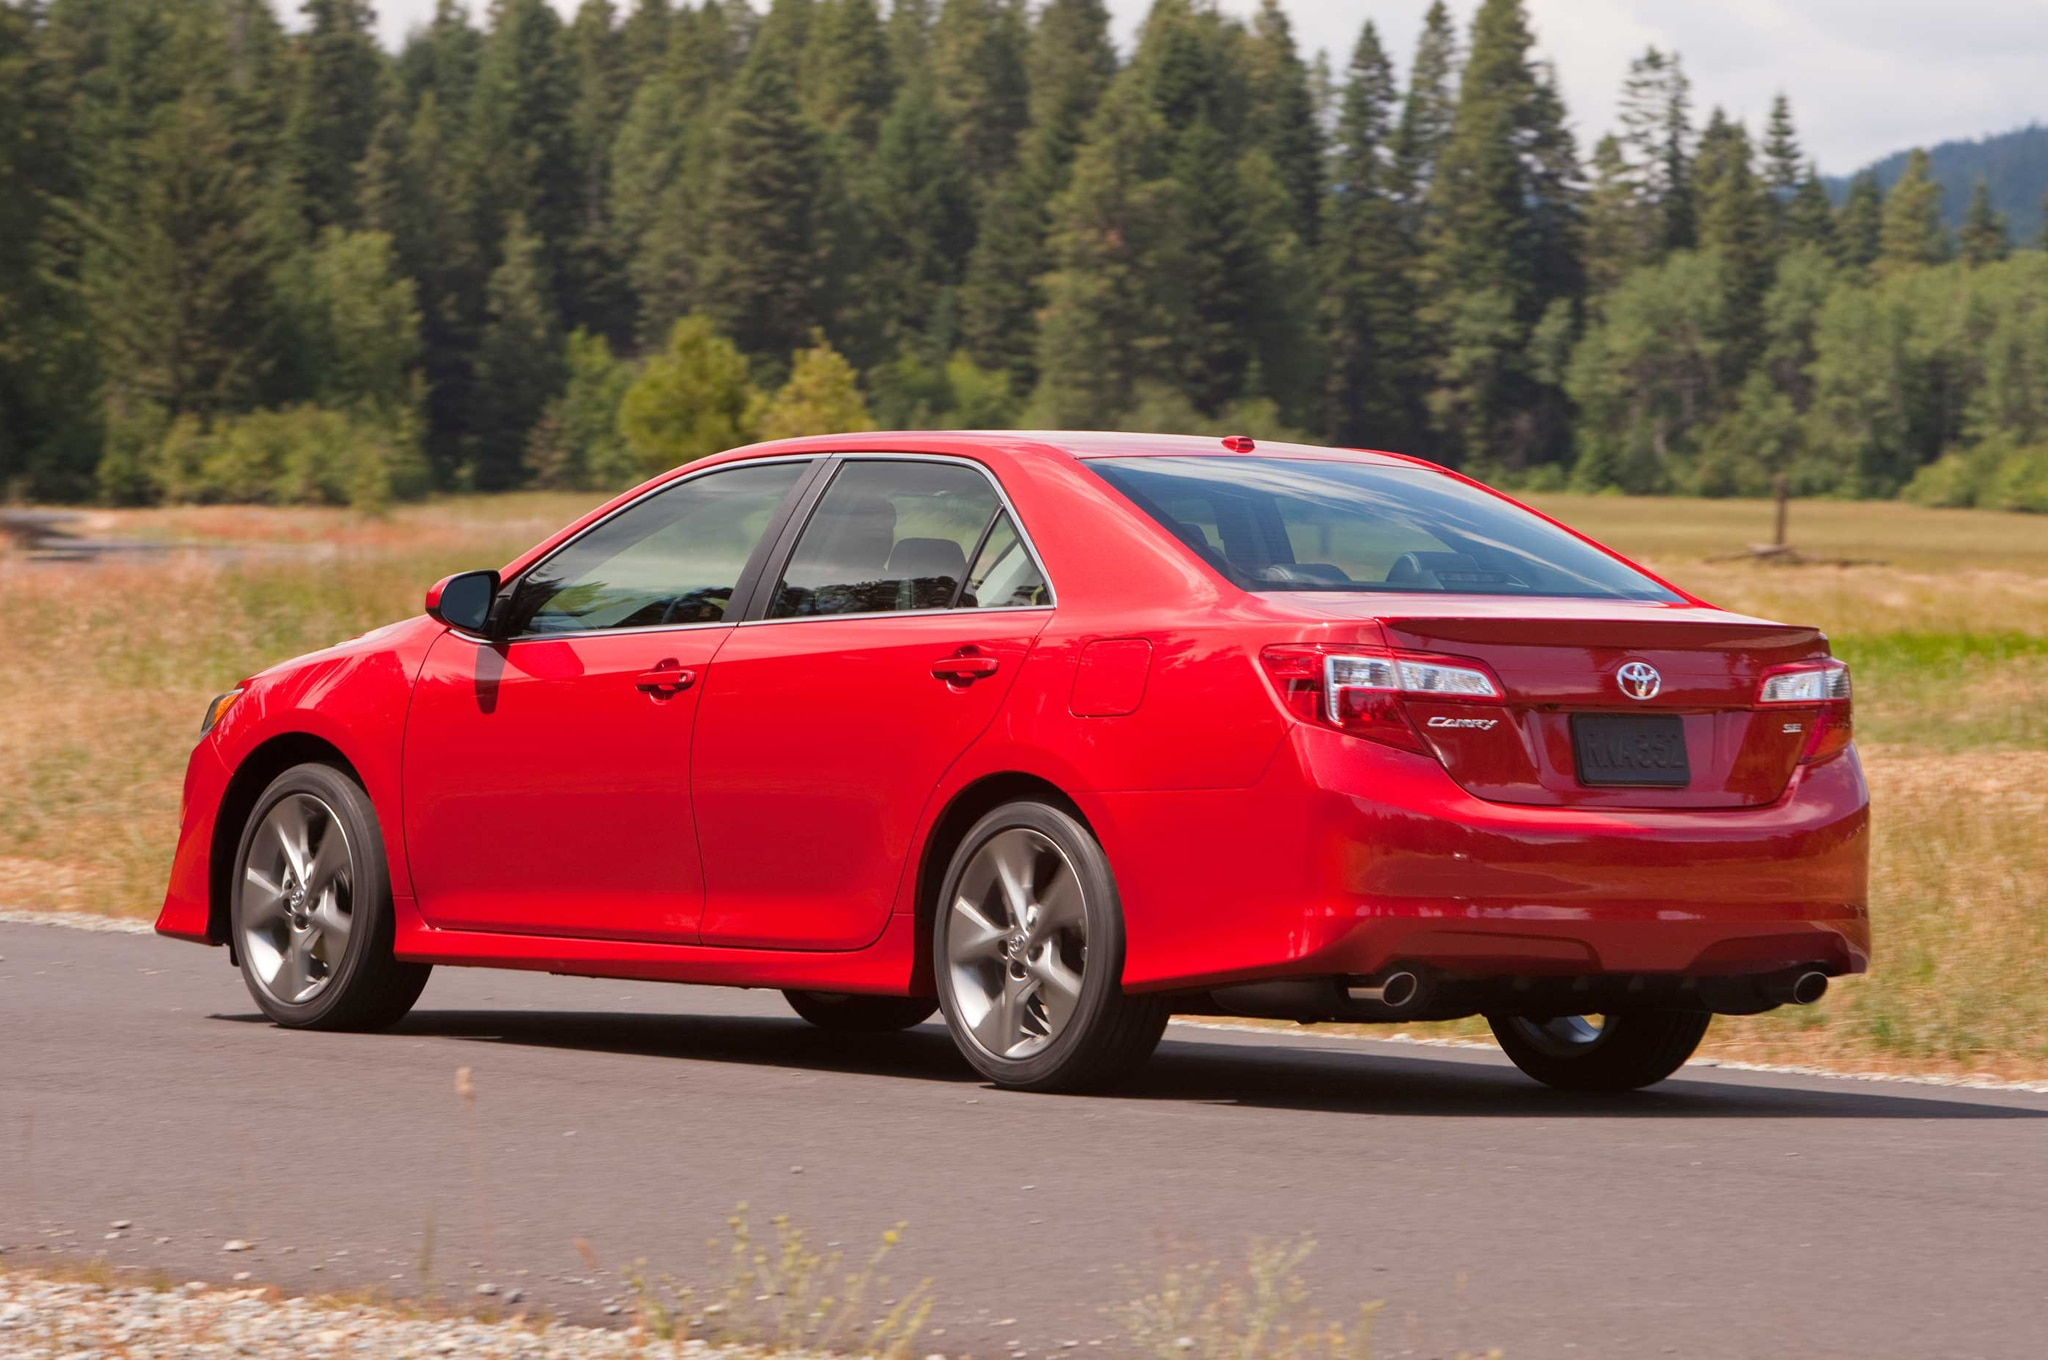 2013 Toyota Camry SE Rear Three Quarter1